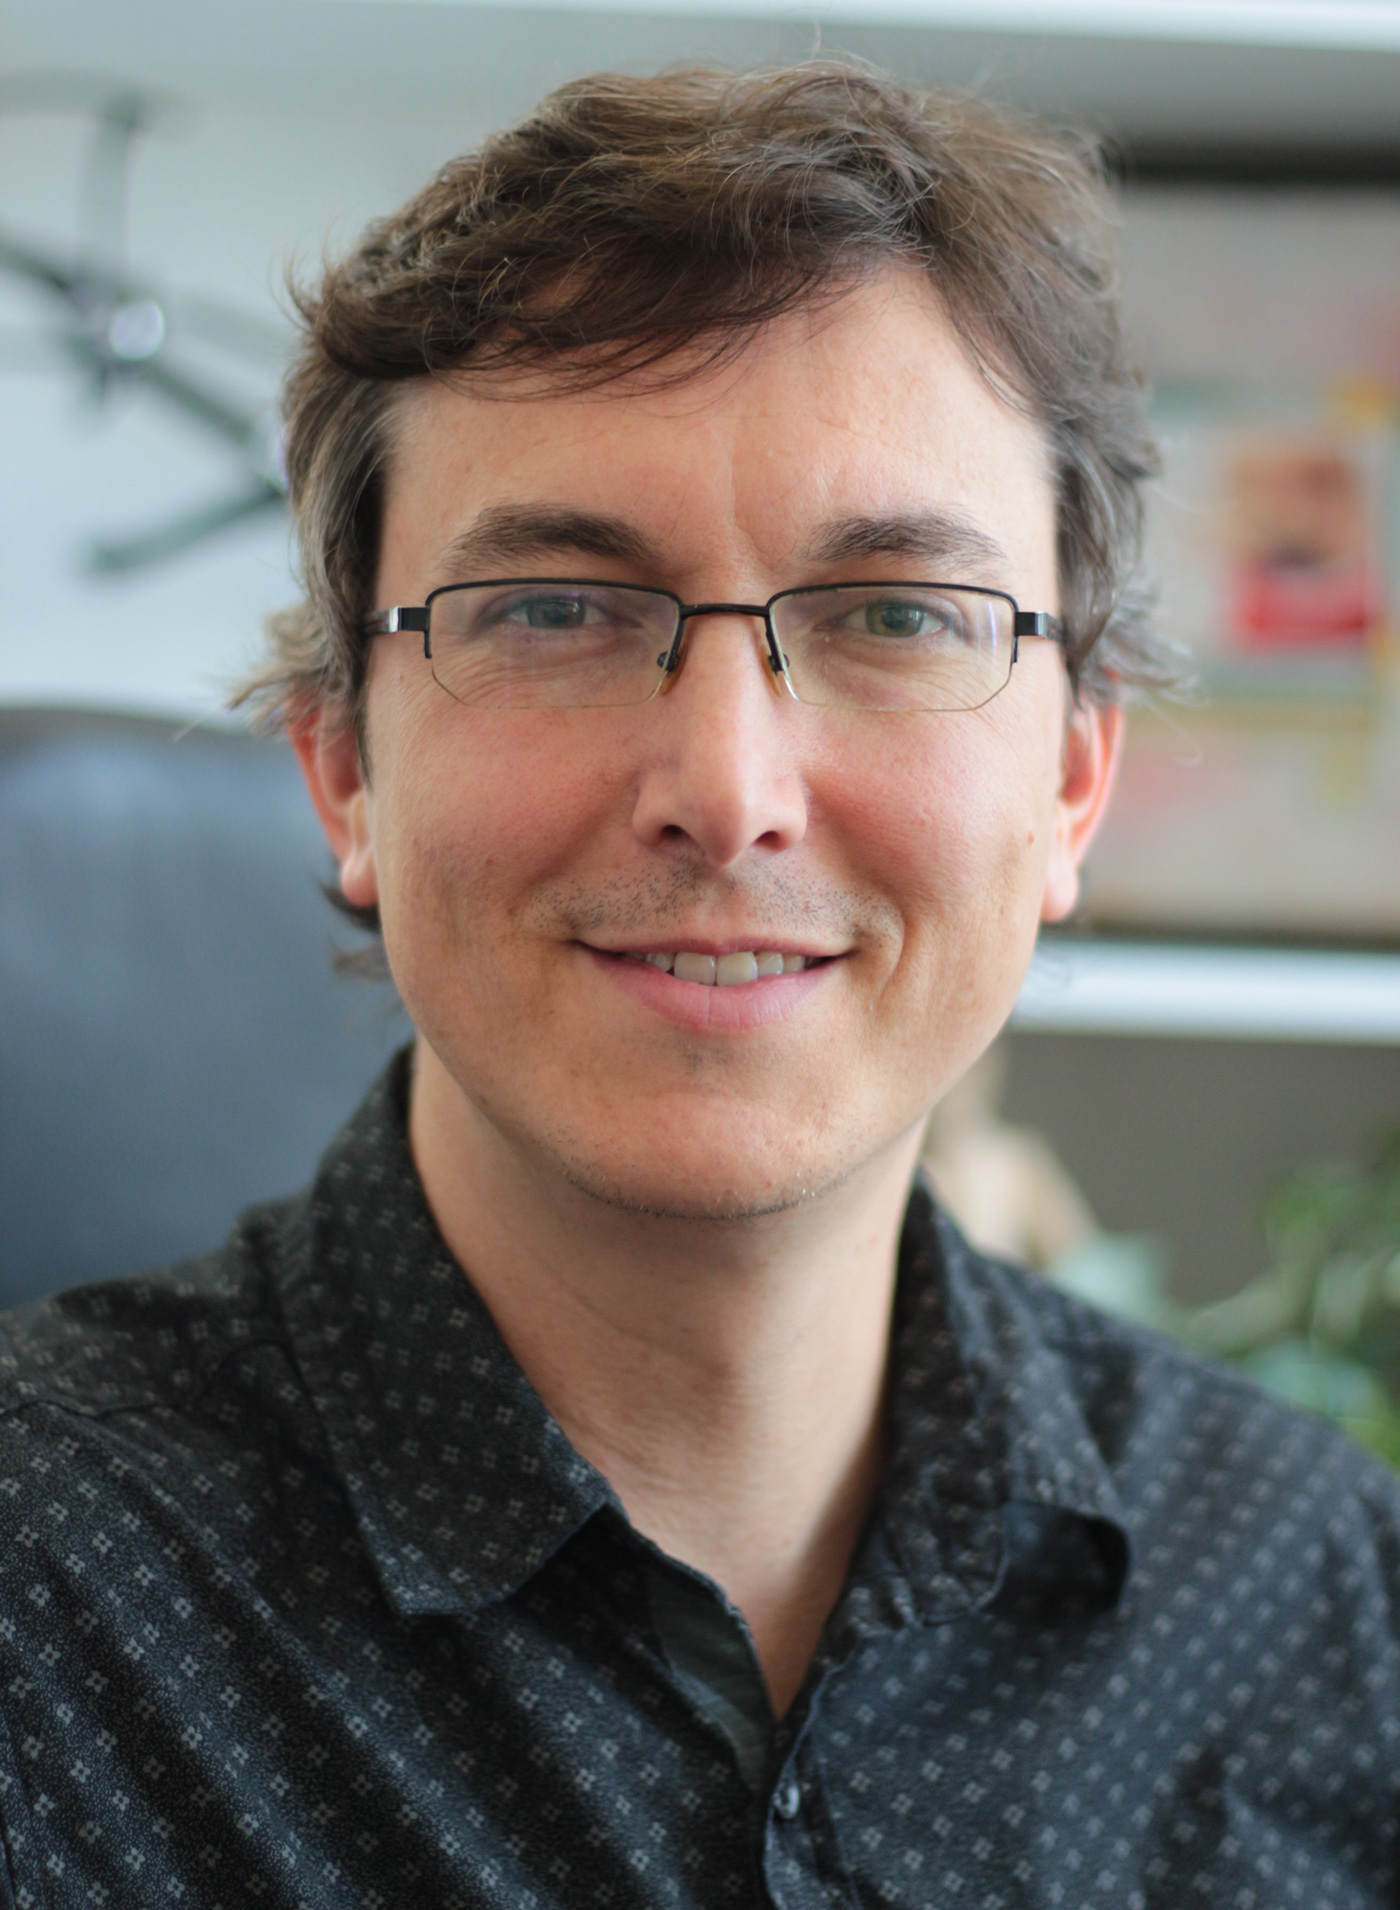 Jean-Francois Millithaler is a Visiting Faculty Lecturer in the Francis College of Engineering's Electrical & Computer Engineering Department at UMass Lowell.